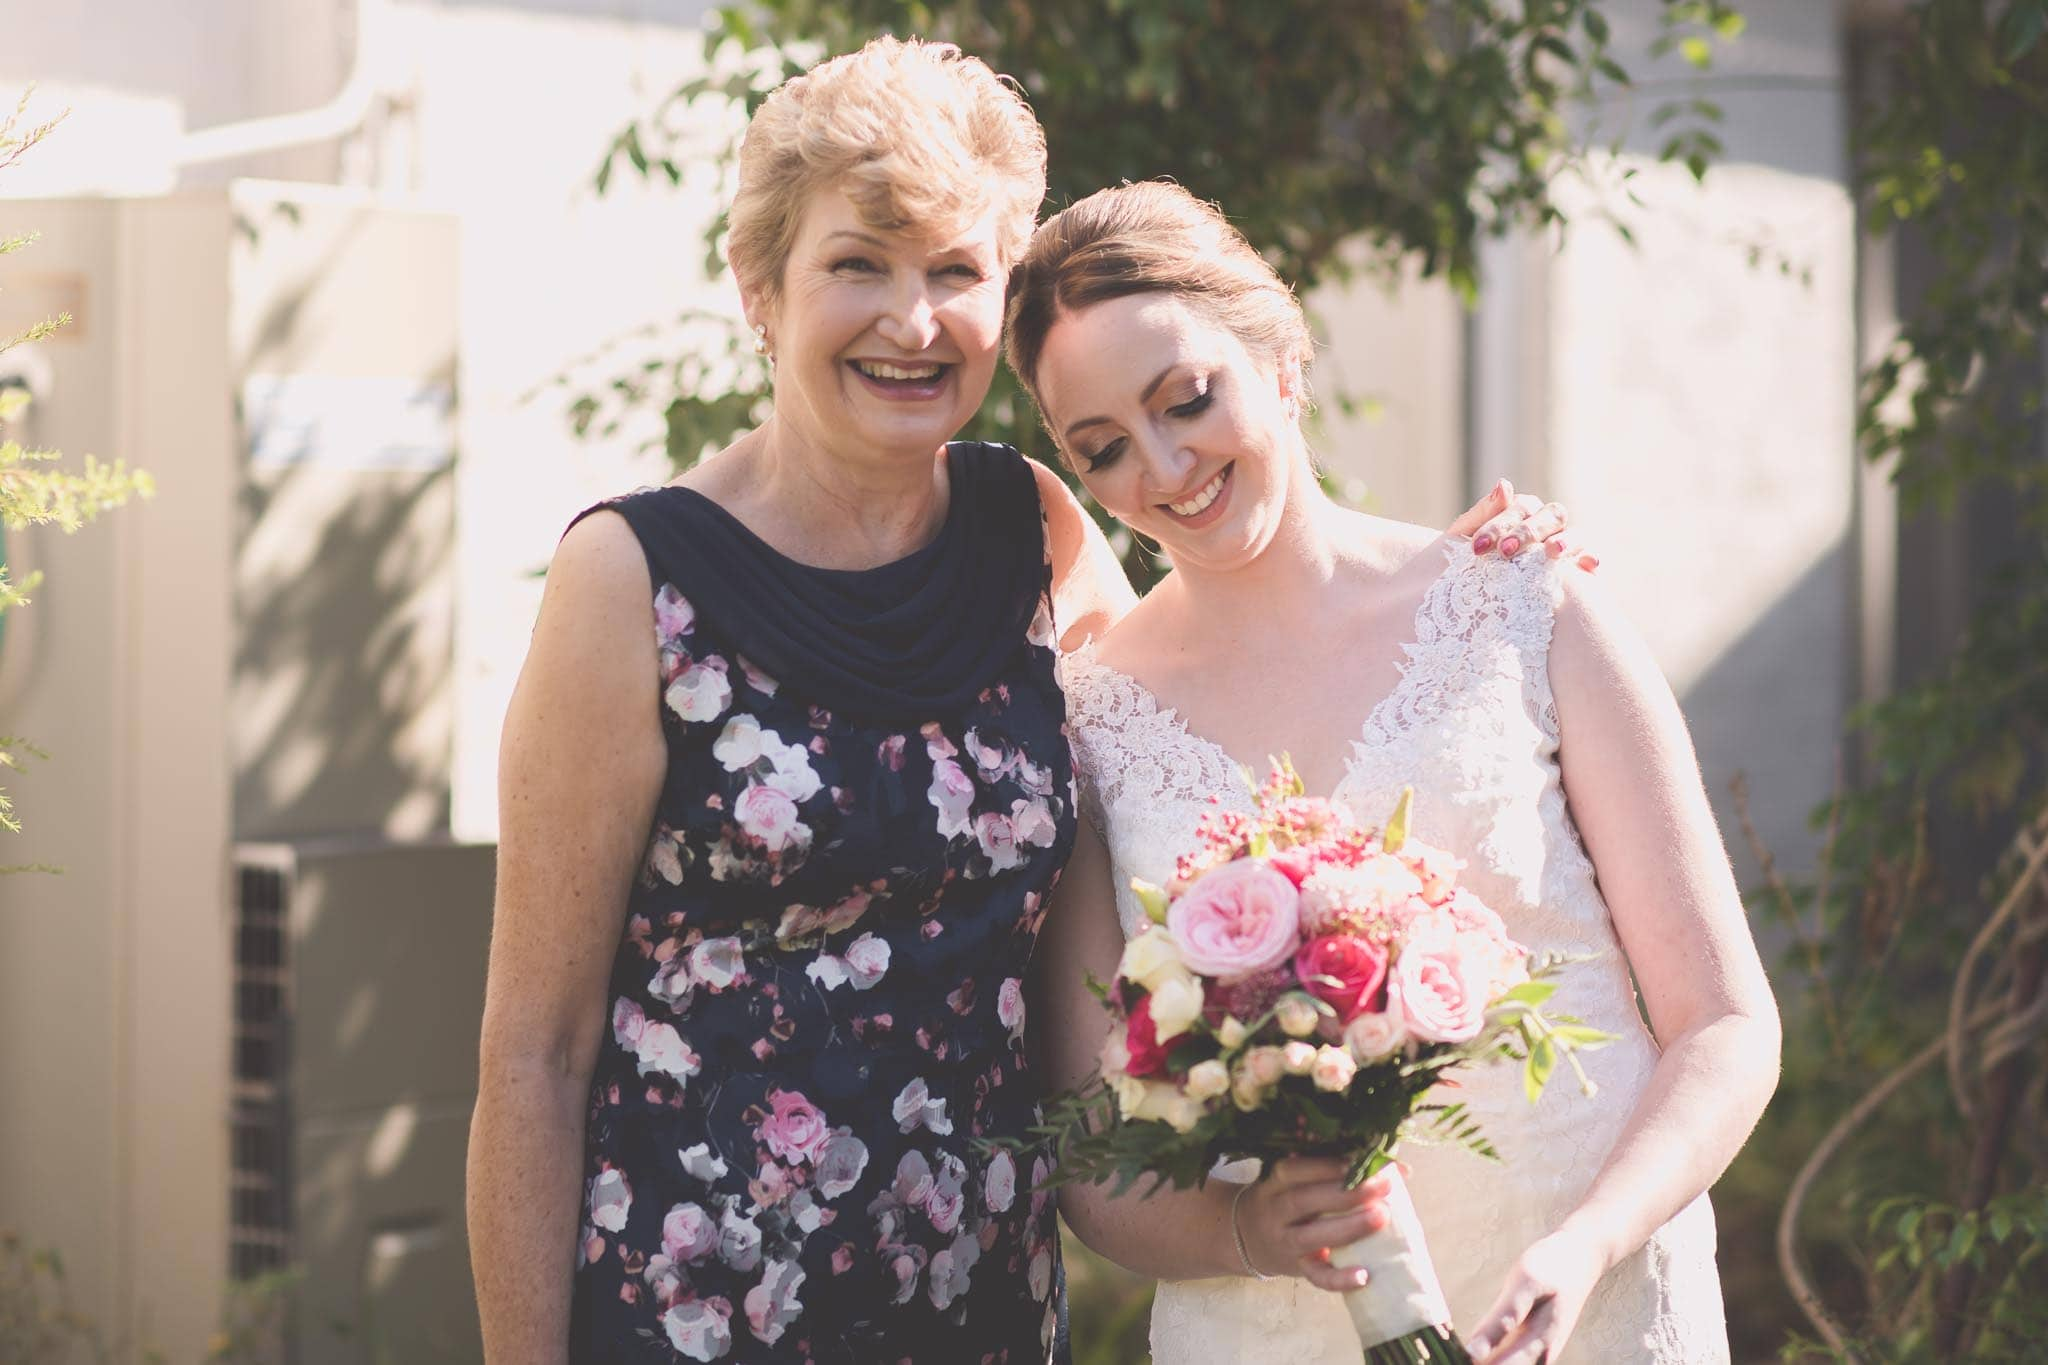 Melbourne wedding photography of the bride and her mother